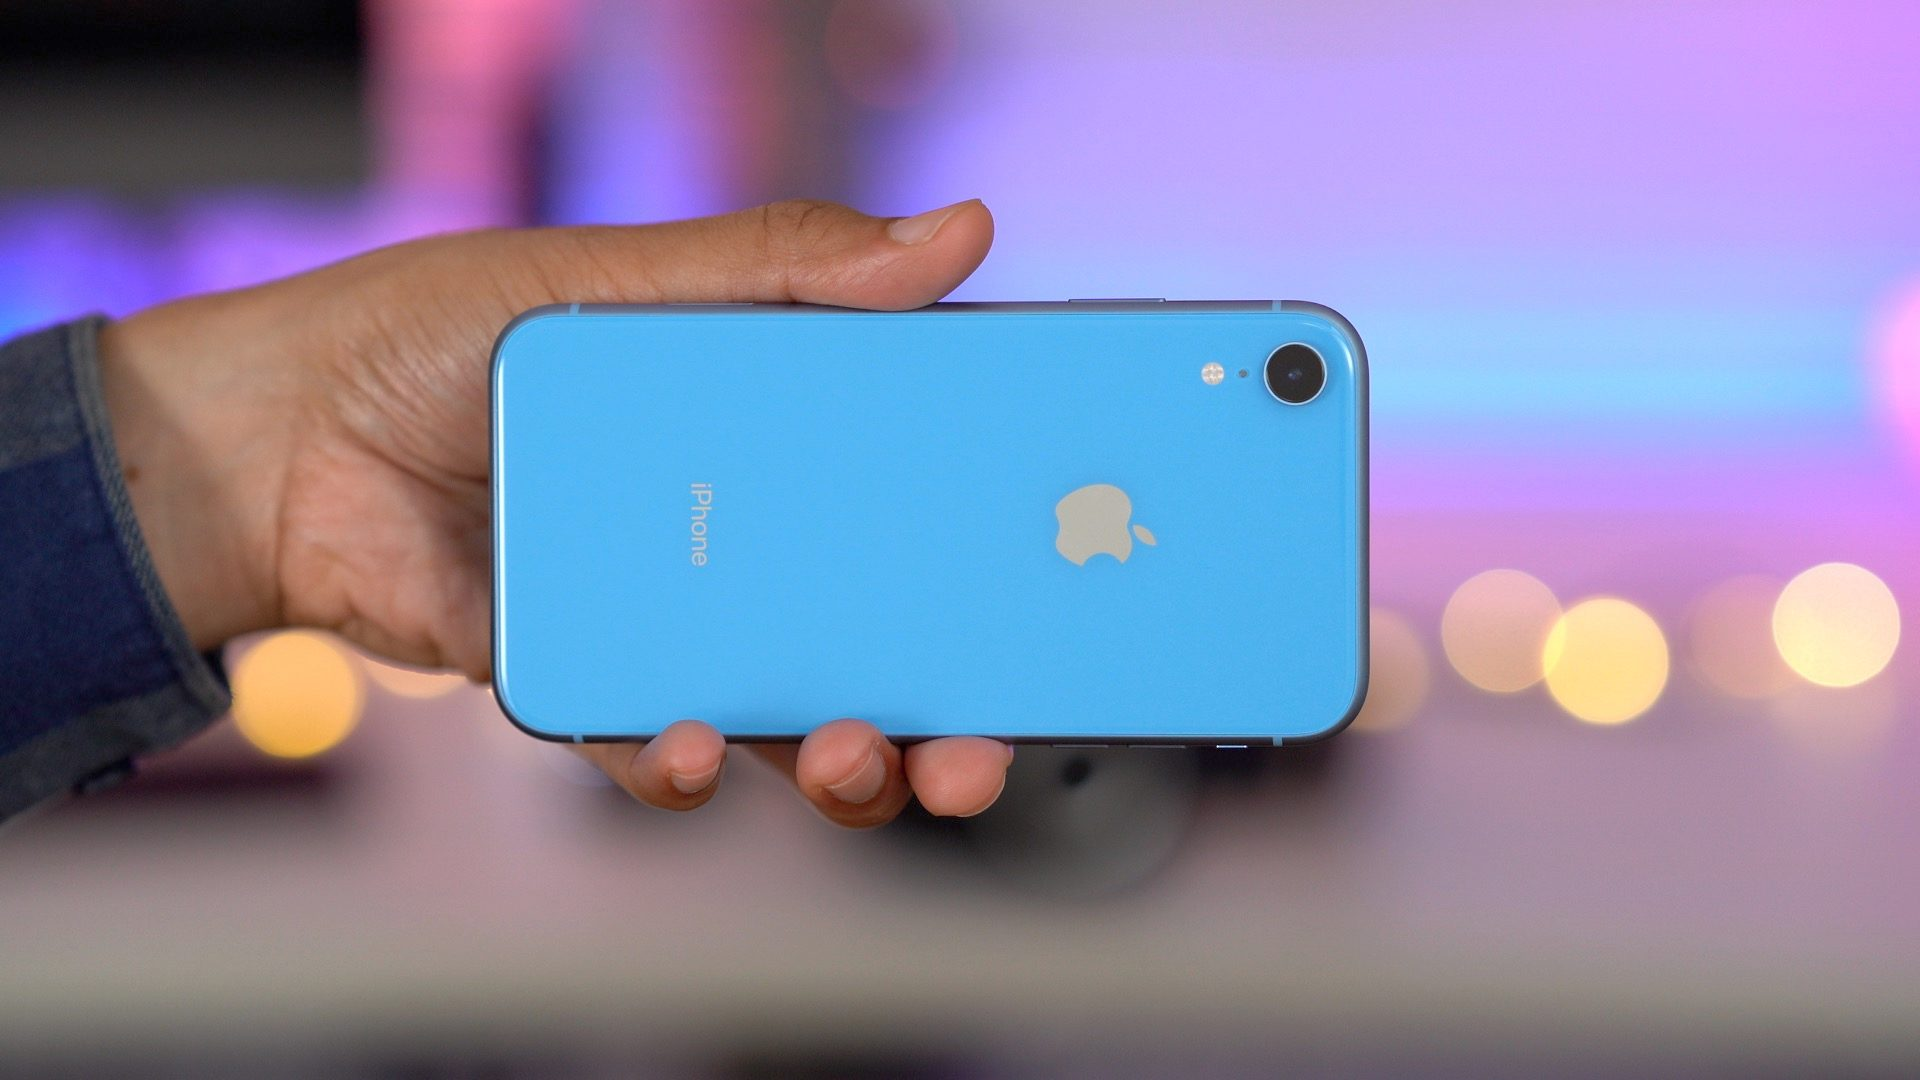 "<span href=""https://9to5mac.com/2019/09/12/iphone-xr-vs-iphone-11/"">iPhone XR vs iPhone 11 comparison: Which should you buy?</a>"